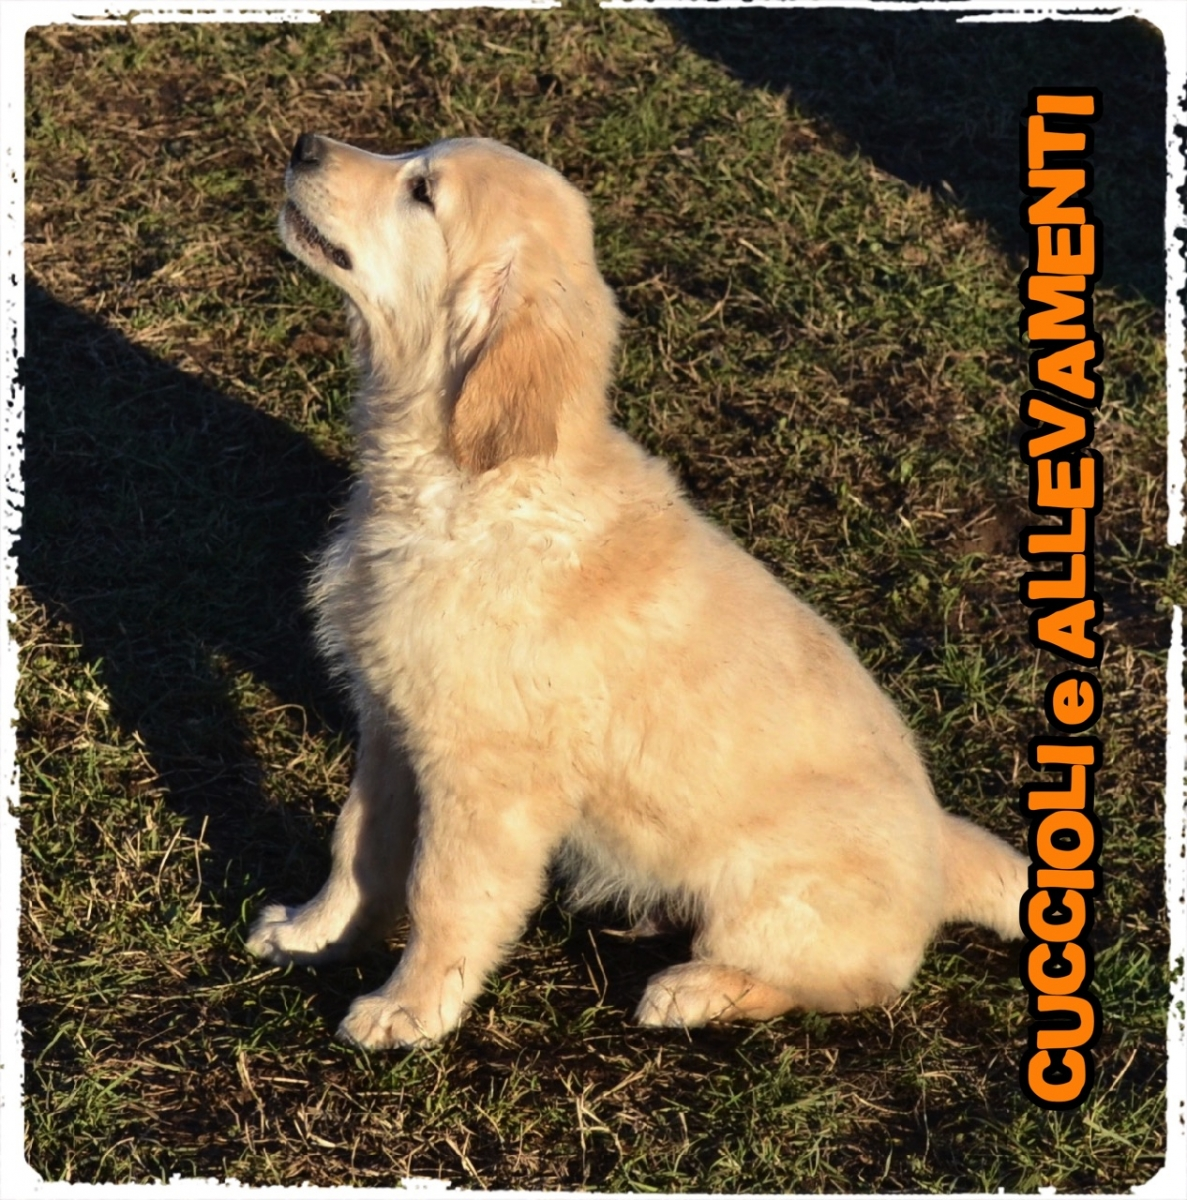 Golden Retriever 12_wm